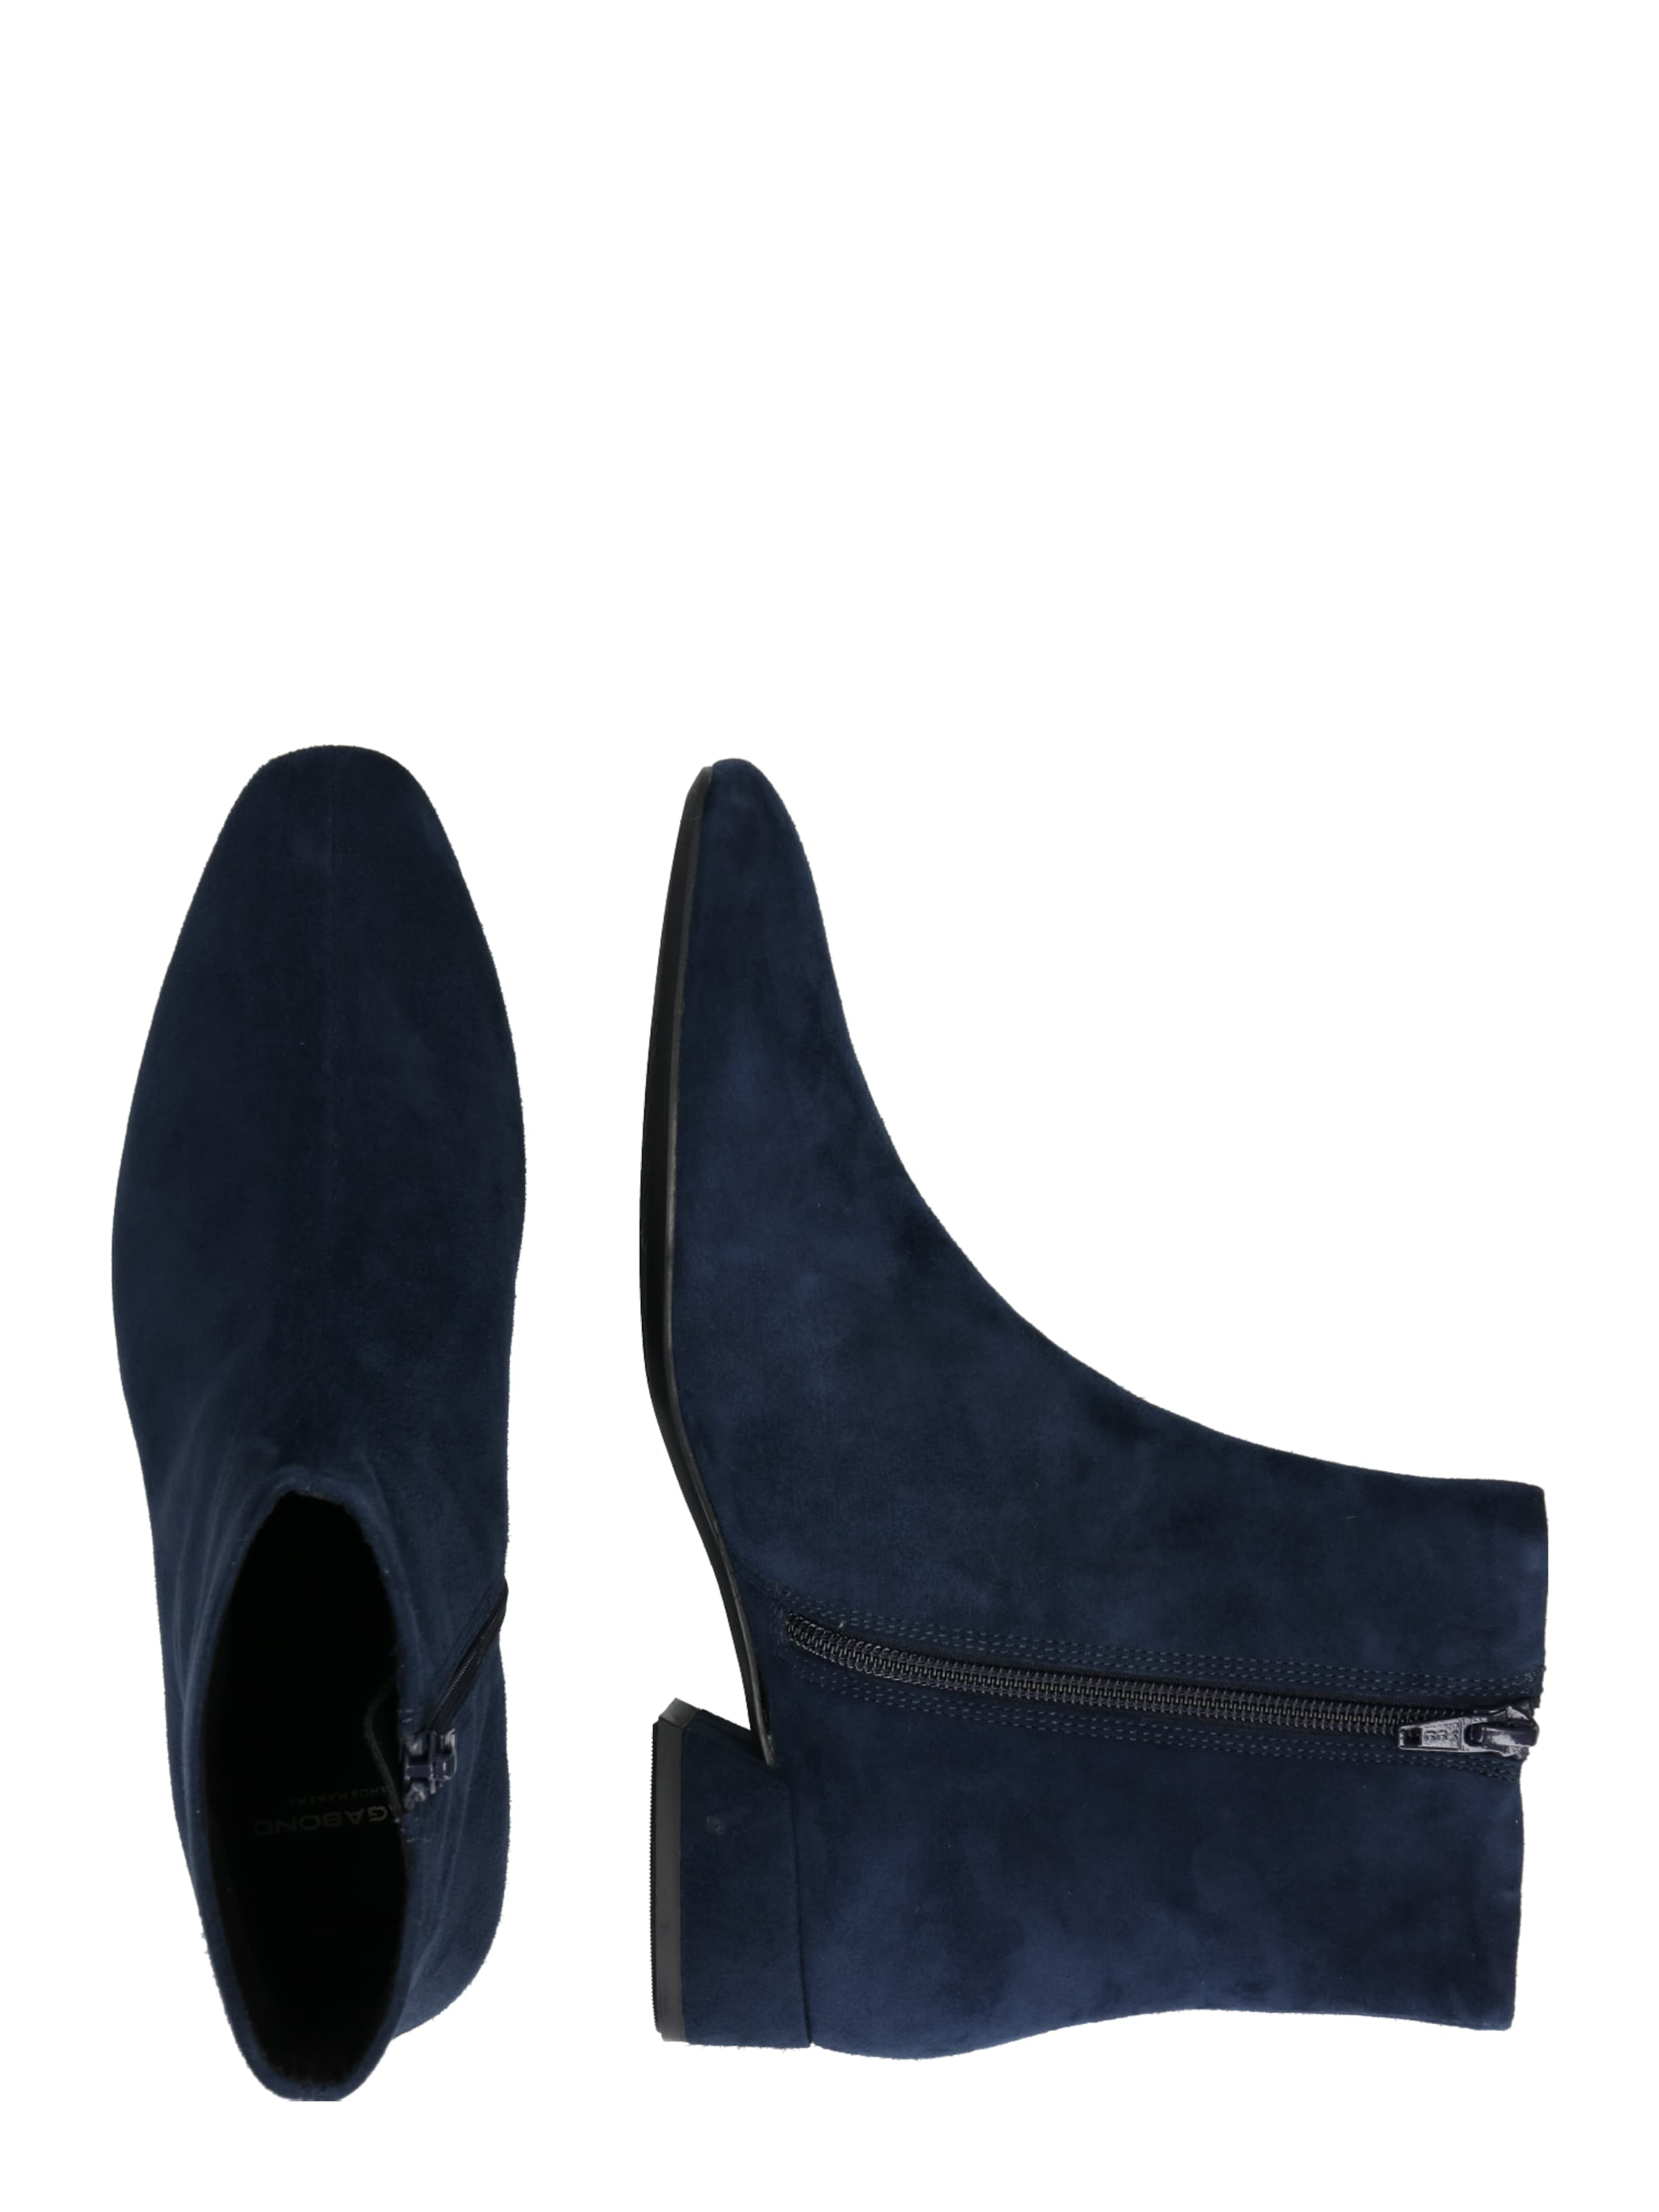 Shoemakers Boots In Dunkelblau Vagabond 'joyce' WHYbeD29IE